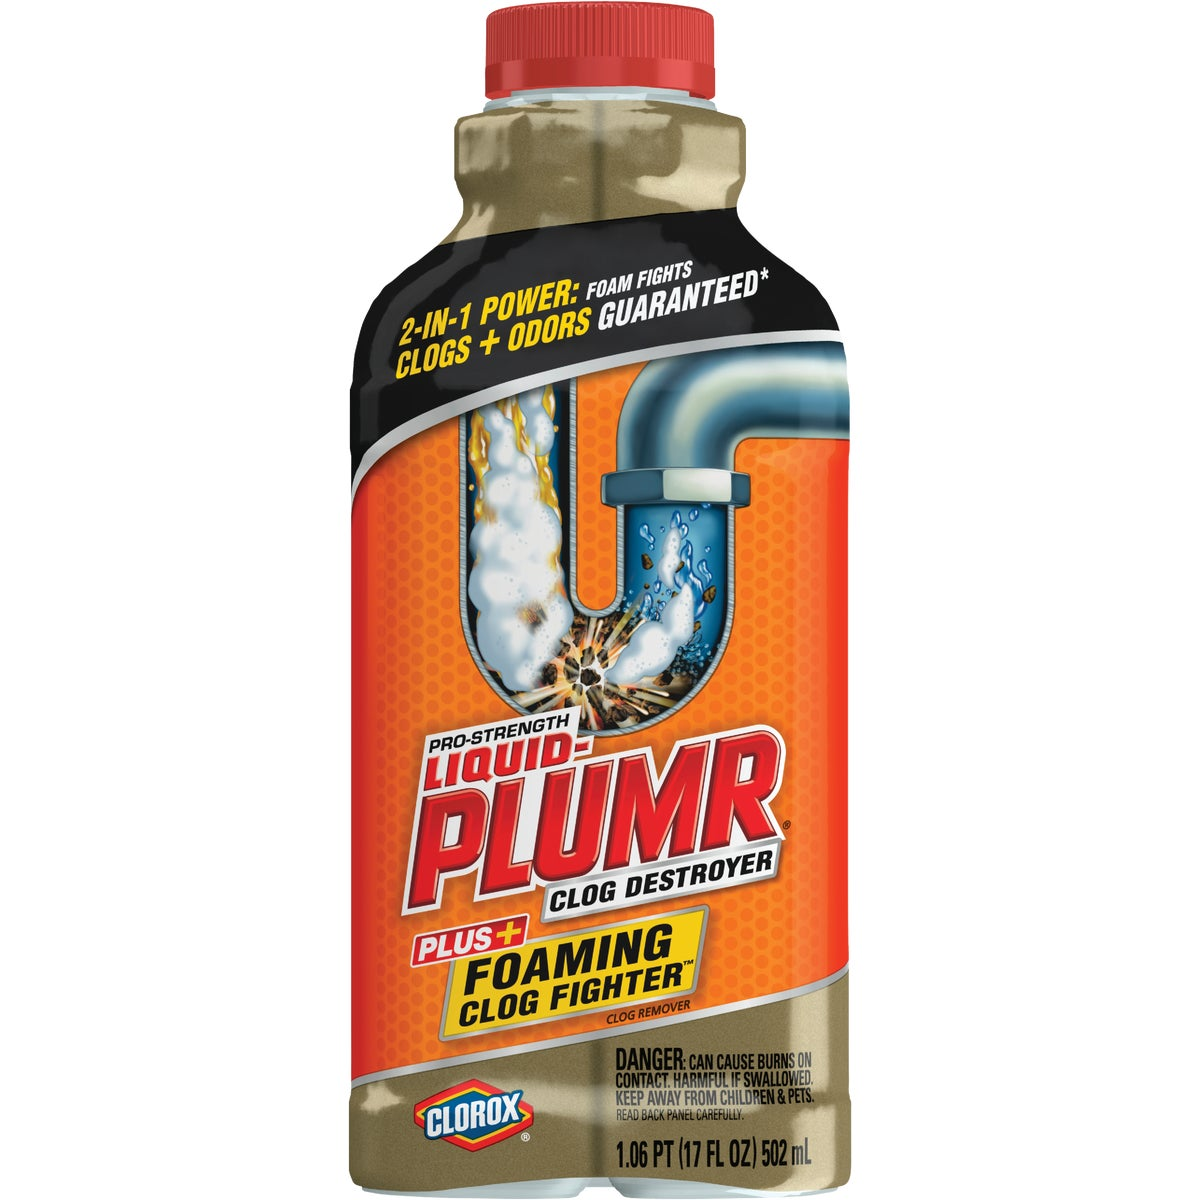 SLOWFLOW LIQUID-PLUMR - 00216 by Clorox/home Cleaning